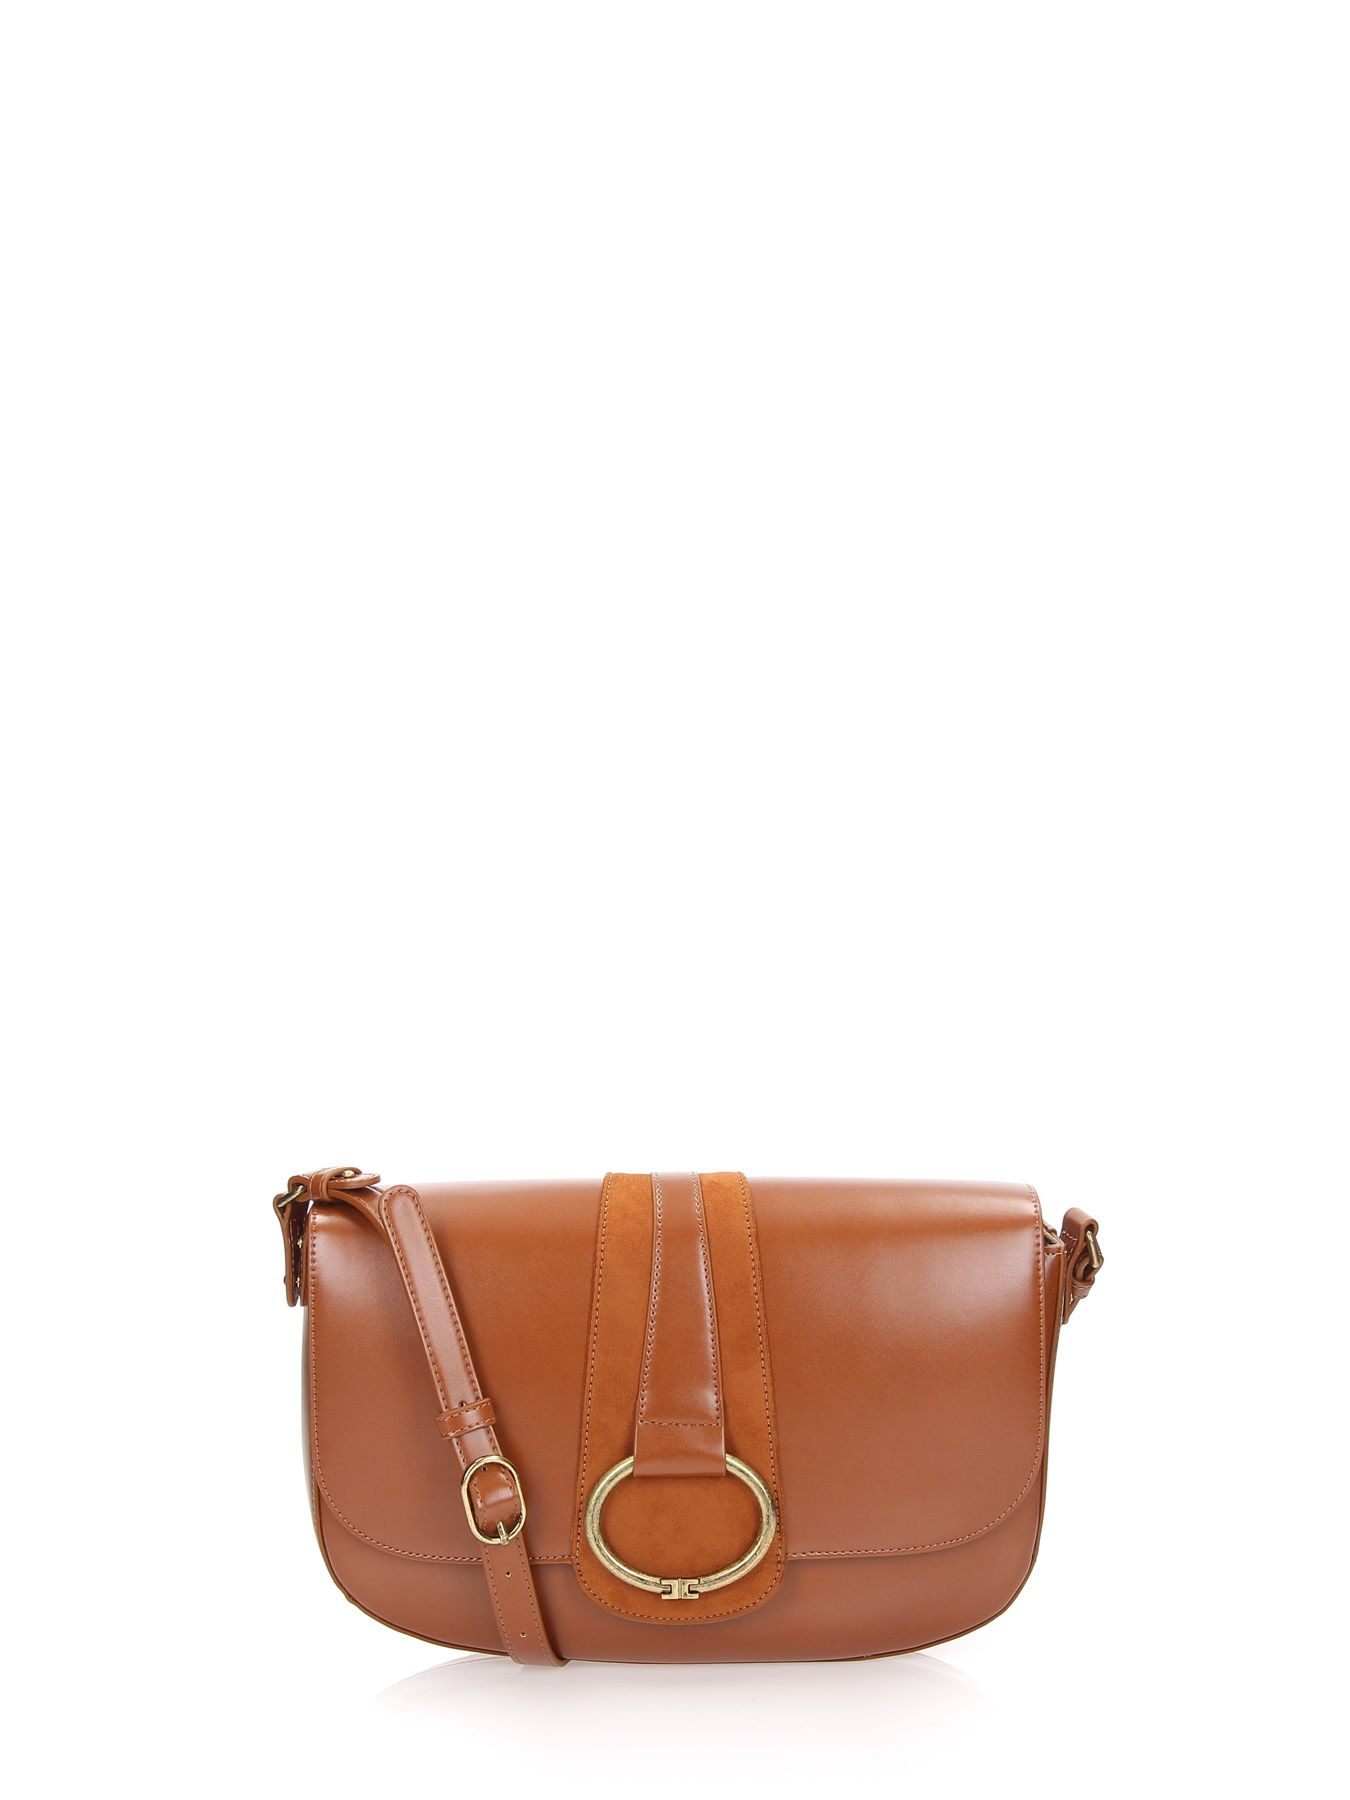 Ring Crossbody in Brown